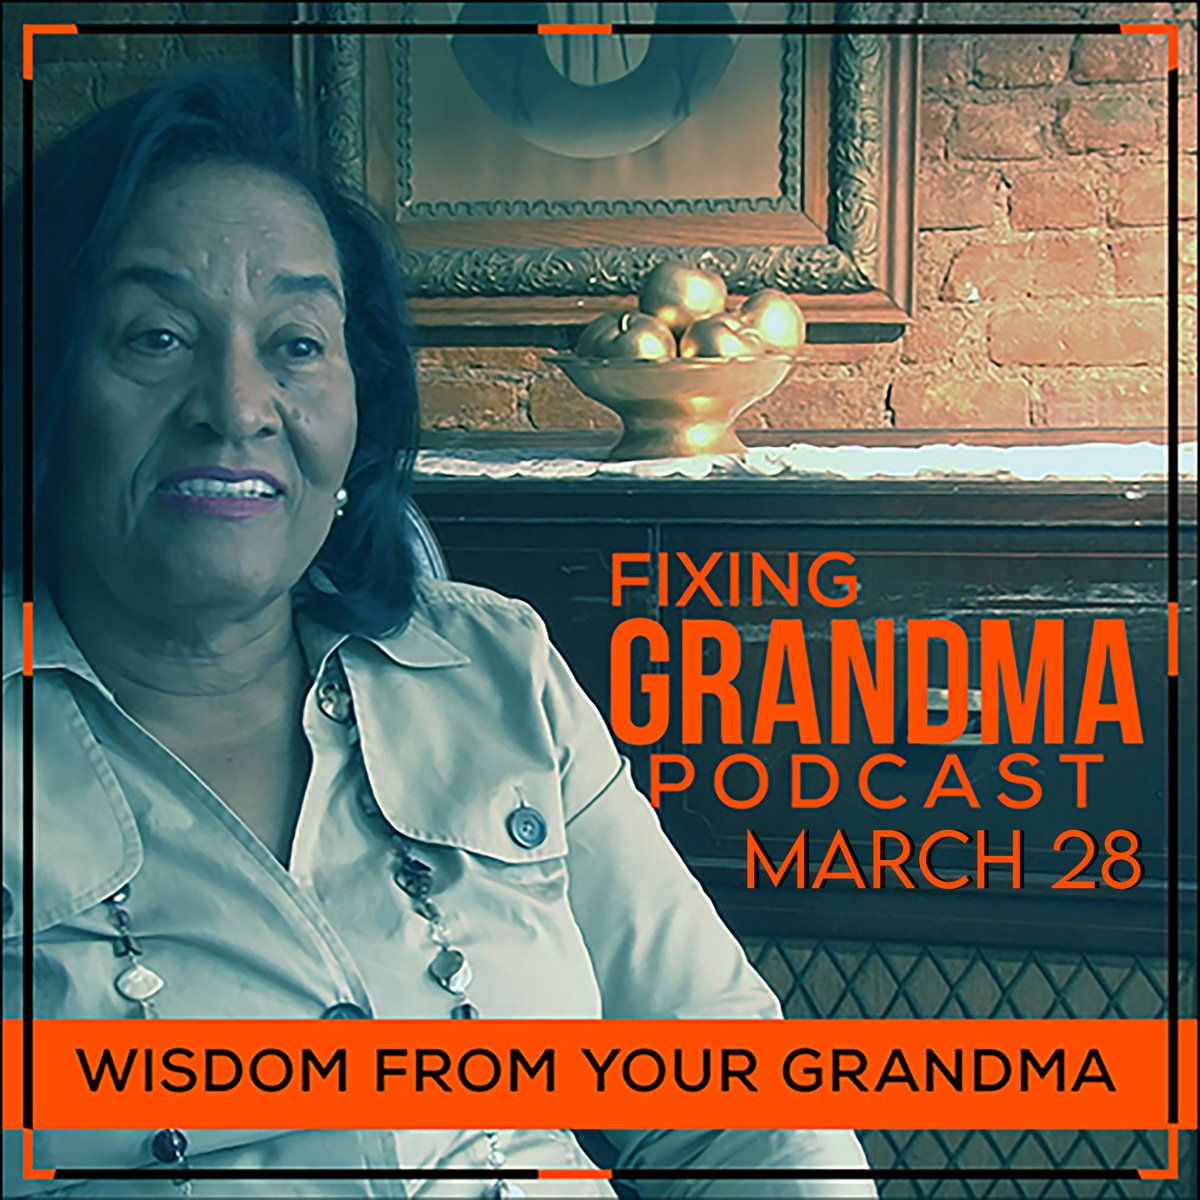 In honor of #BlackHistoryMonth and upcoming #WomensHistoryMonth On March 28, 2021, We are launching Fixing Grandma Podcast , A motivational #podcast for those who are just realizing their purpose and Greatness.  Hear wisdom/experiences from your 89 Year old grandma #podcasting